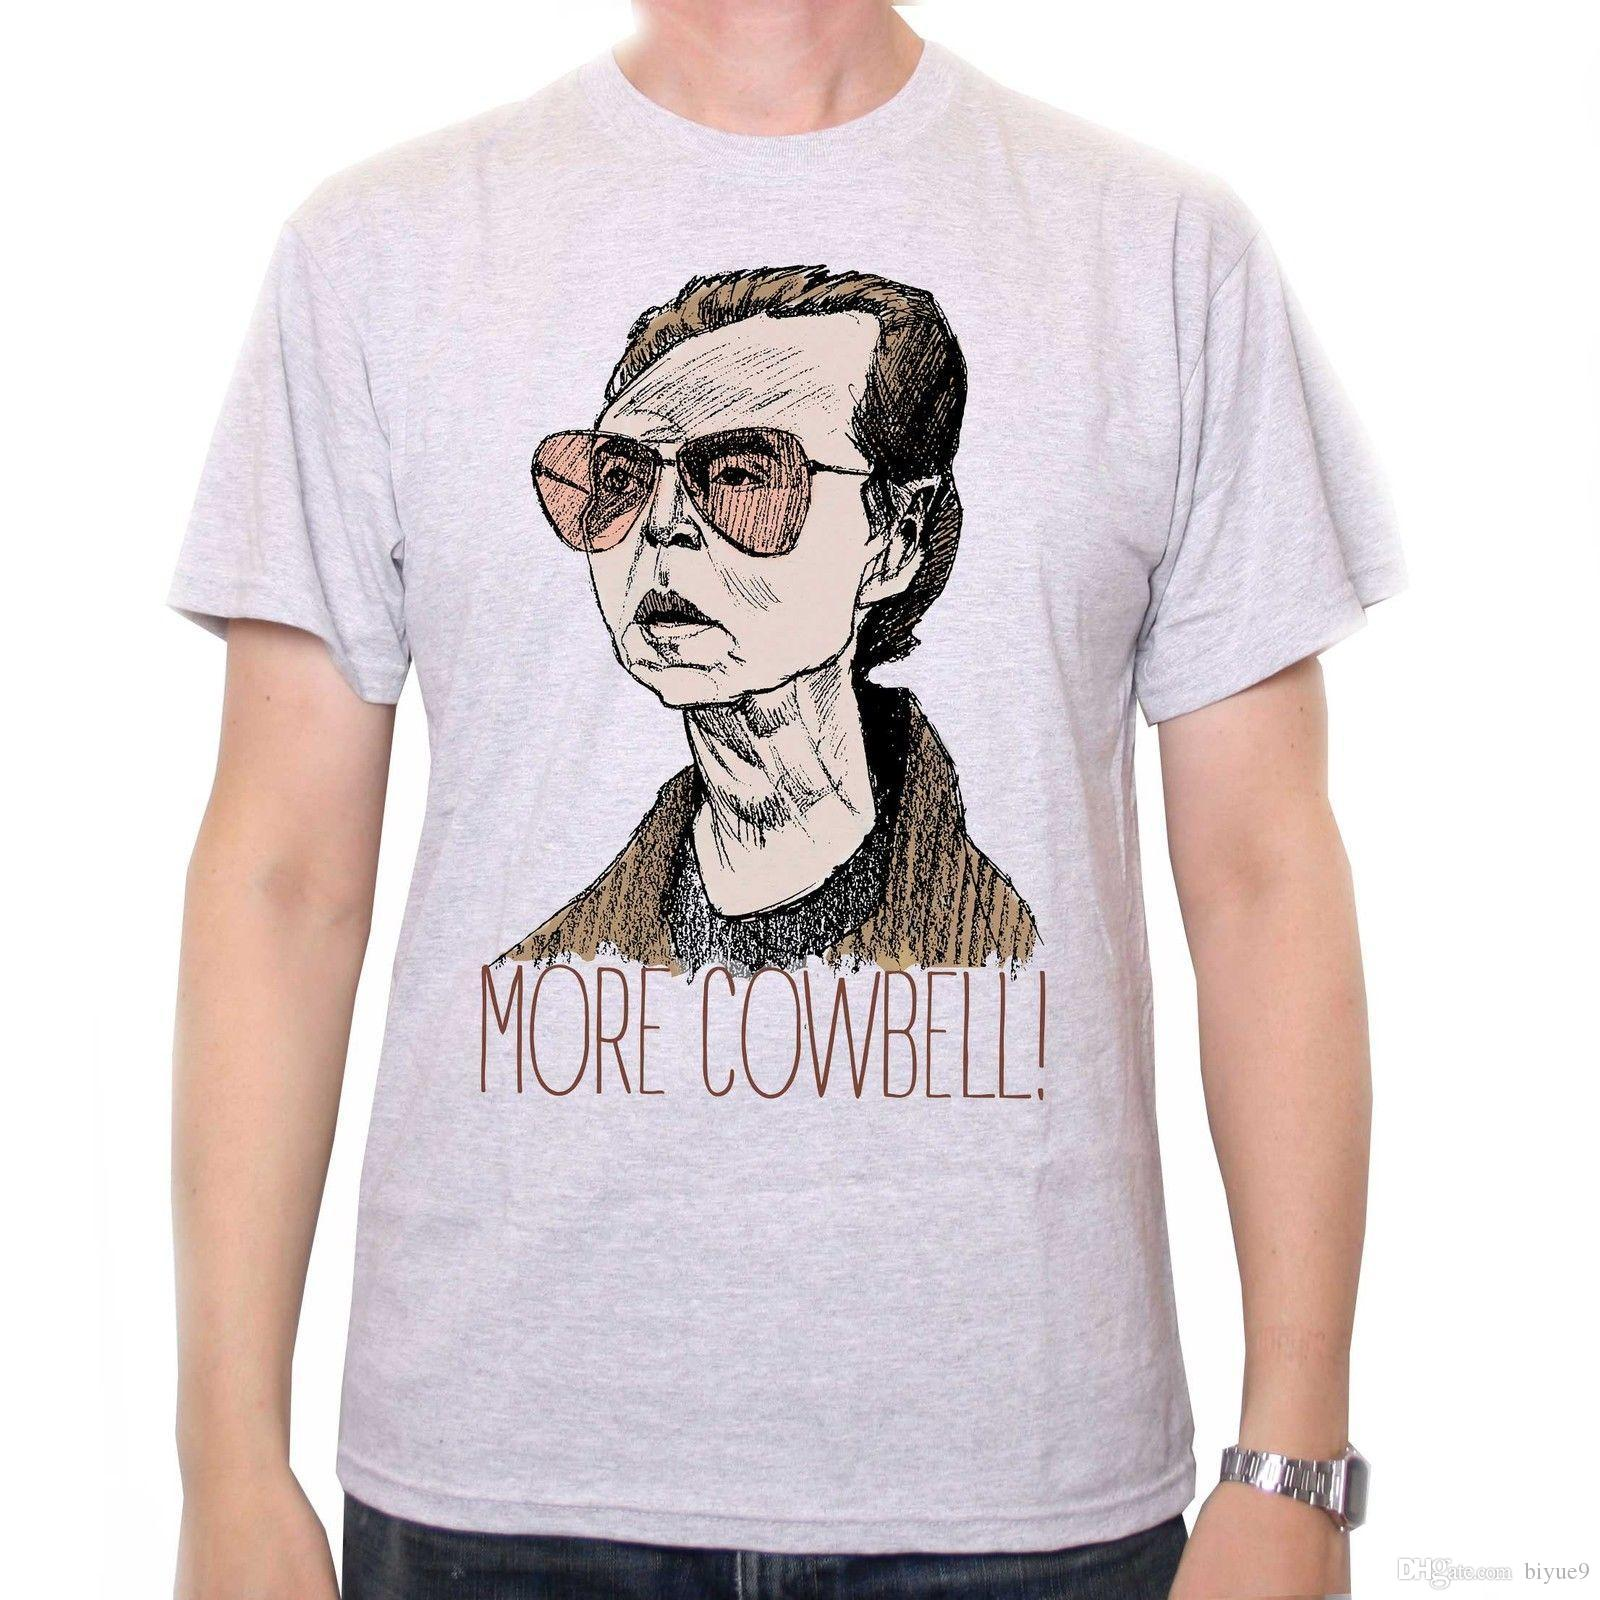 More Cowbell T Shirt Classic Saturday Night Live Inspired Cult Tv